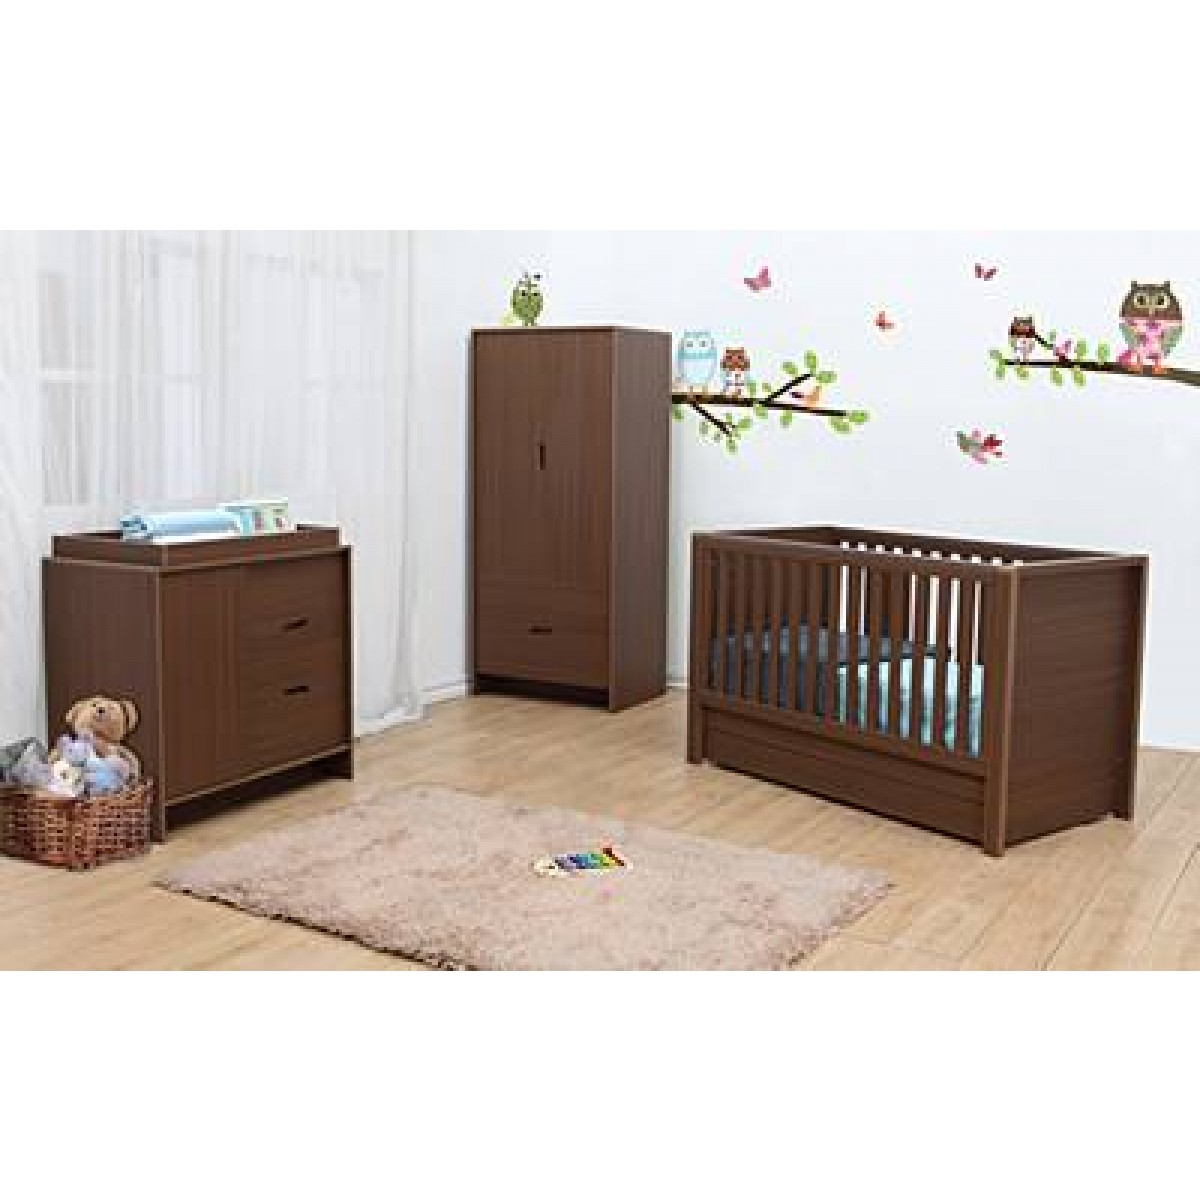 Nursery furniture collections bradford black nursery for Affordable nursery furniture sets